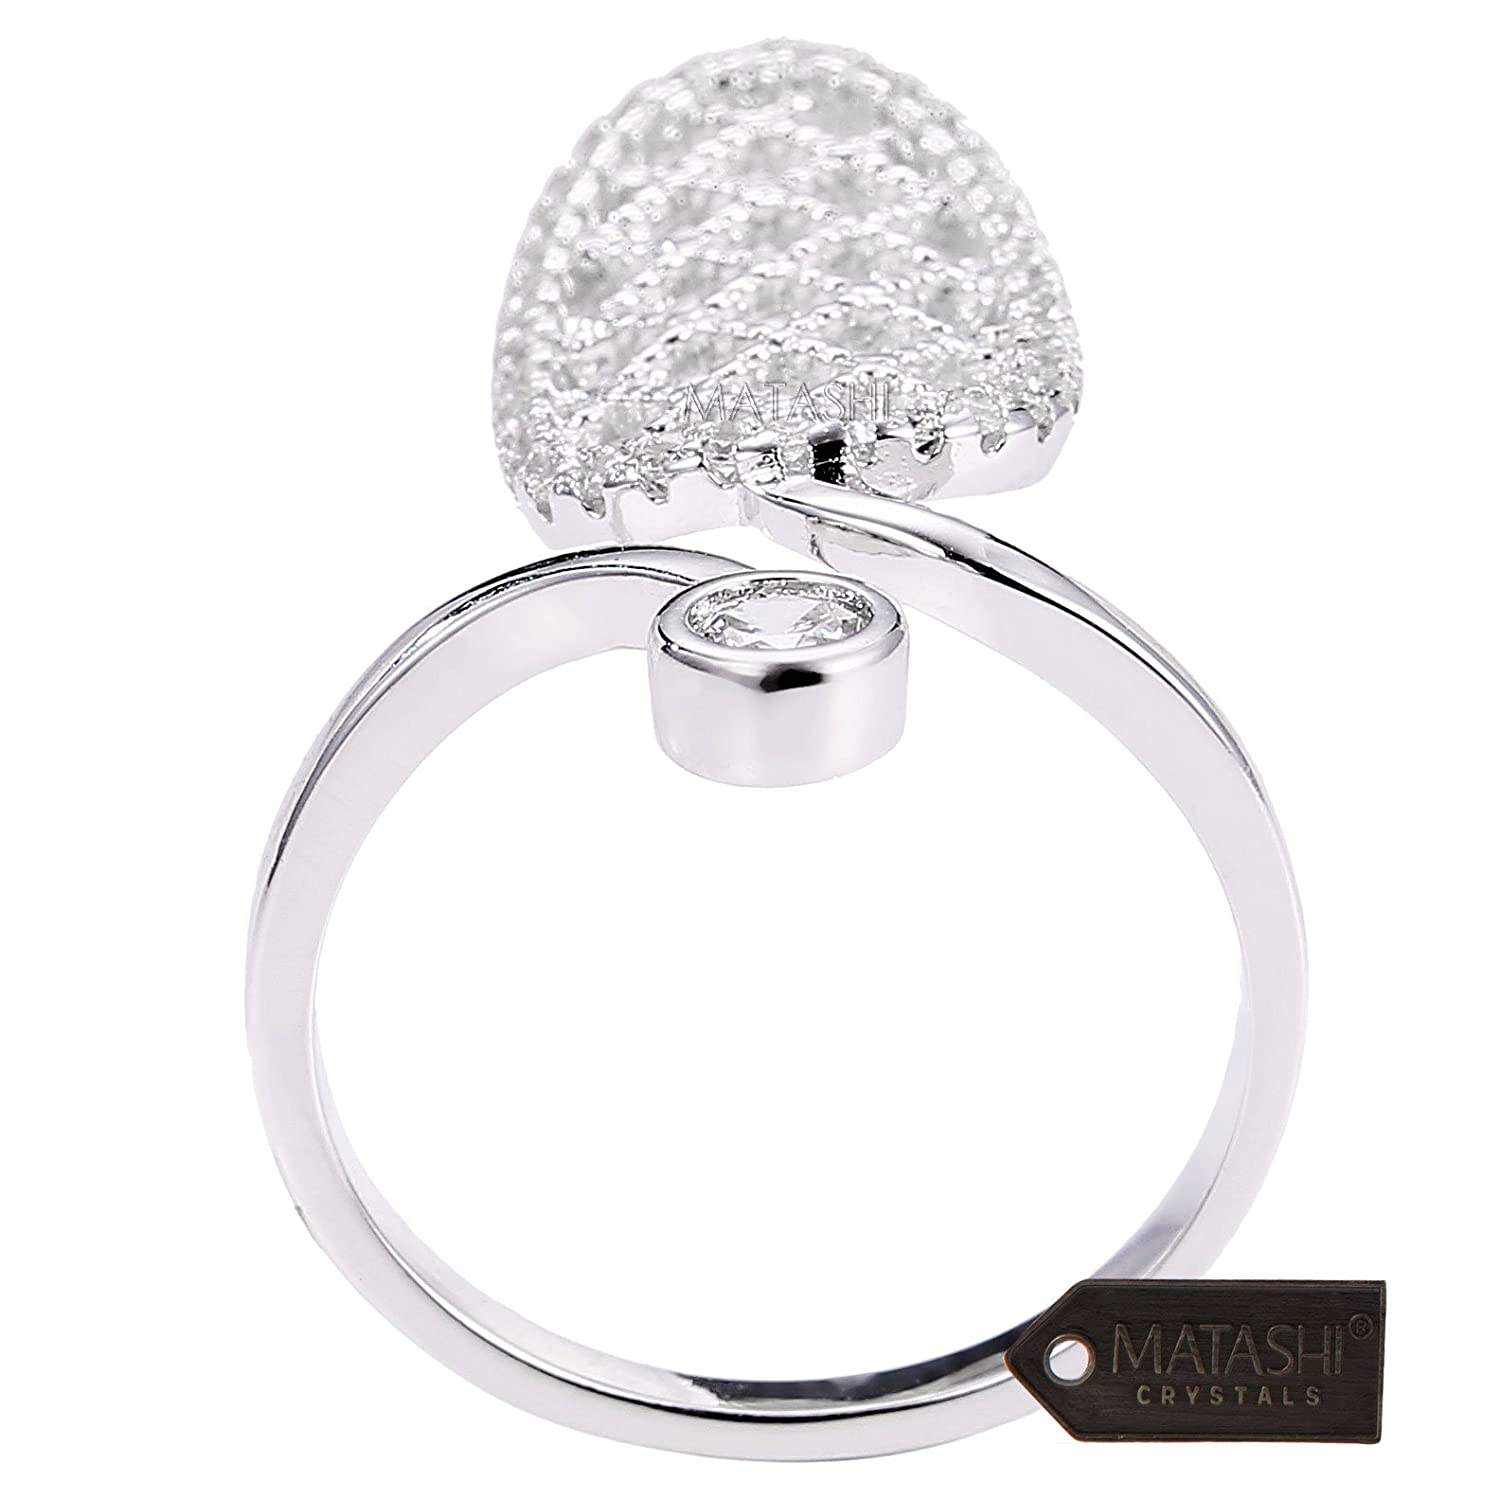 Matashi Rhodium Plated Almond Shape Wrap Ring Size 7:Unique-Modern Accessory for Women /& Girl,Elegant Gift Idea for Valentines,Non-Traditional-High-End,CZ Stones MTJR30897